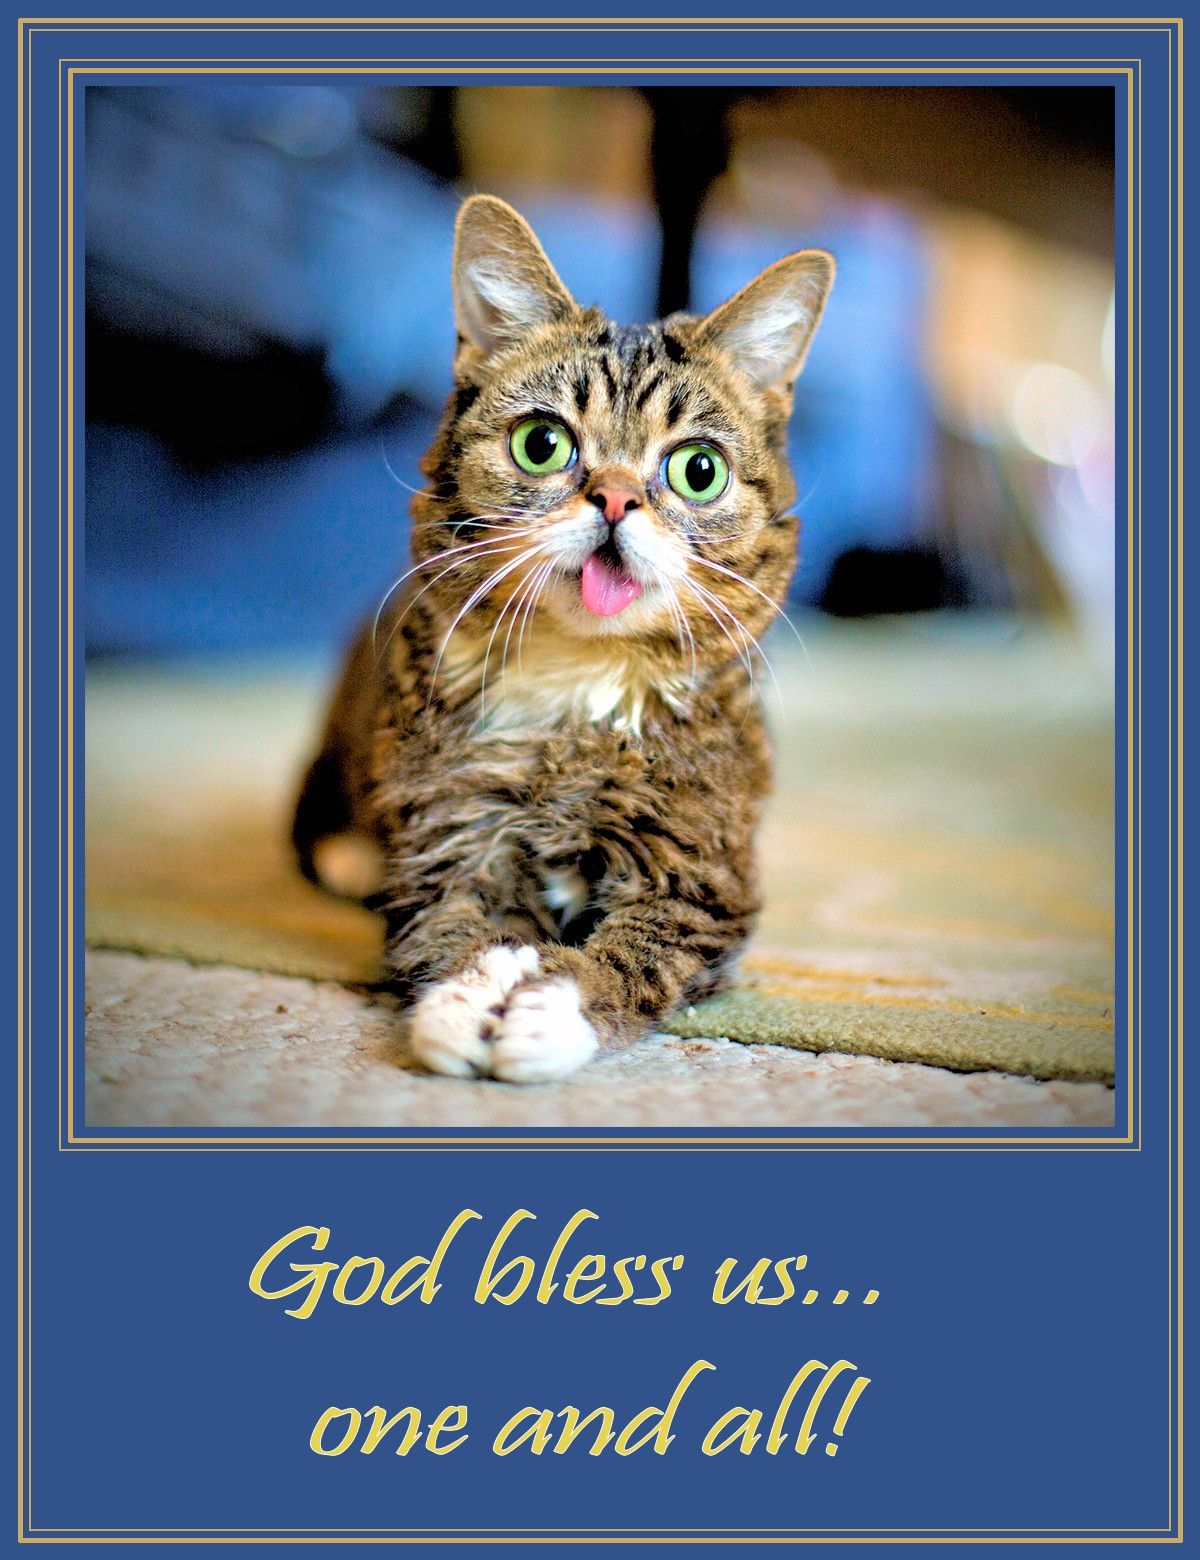 00 Lil Bub the Internet Cat. God Bless Us. 15.06